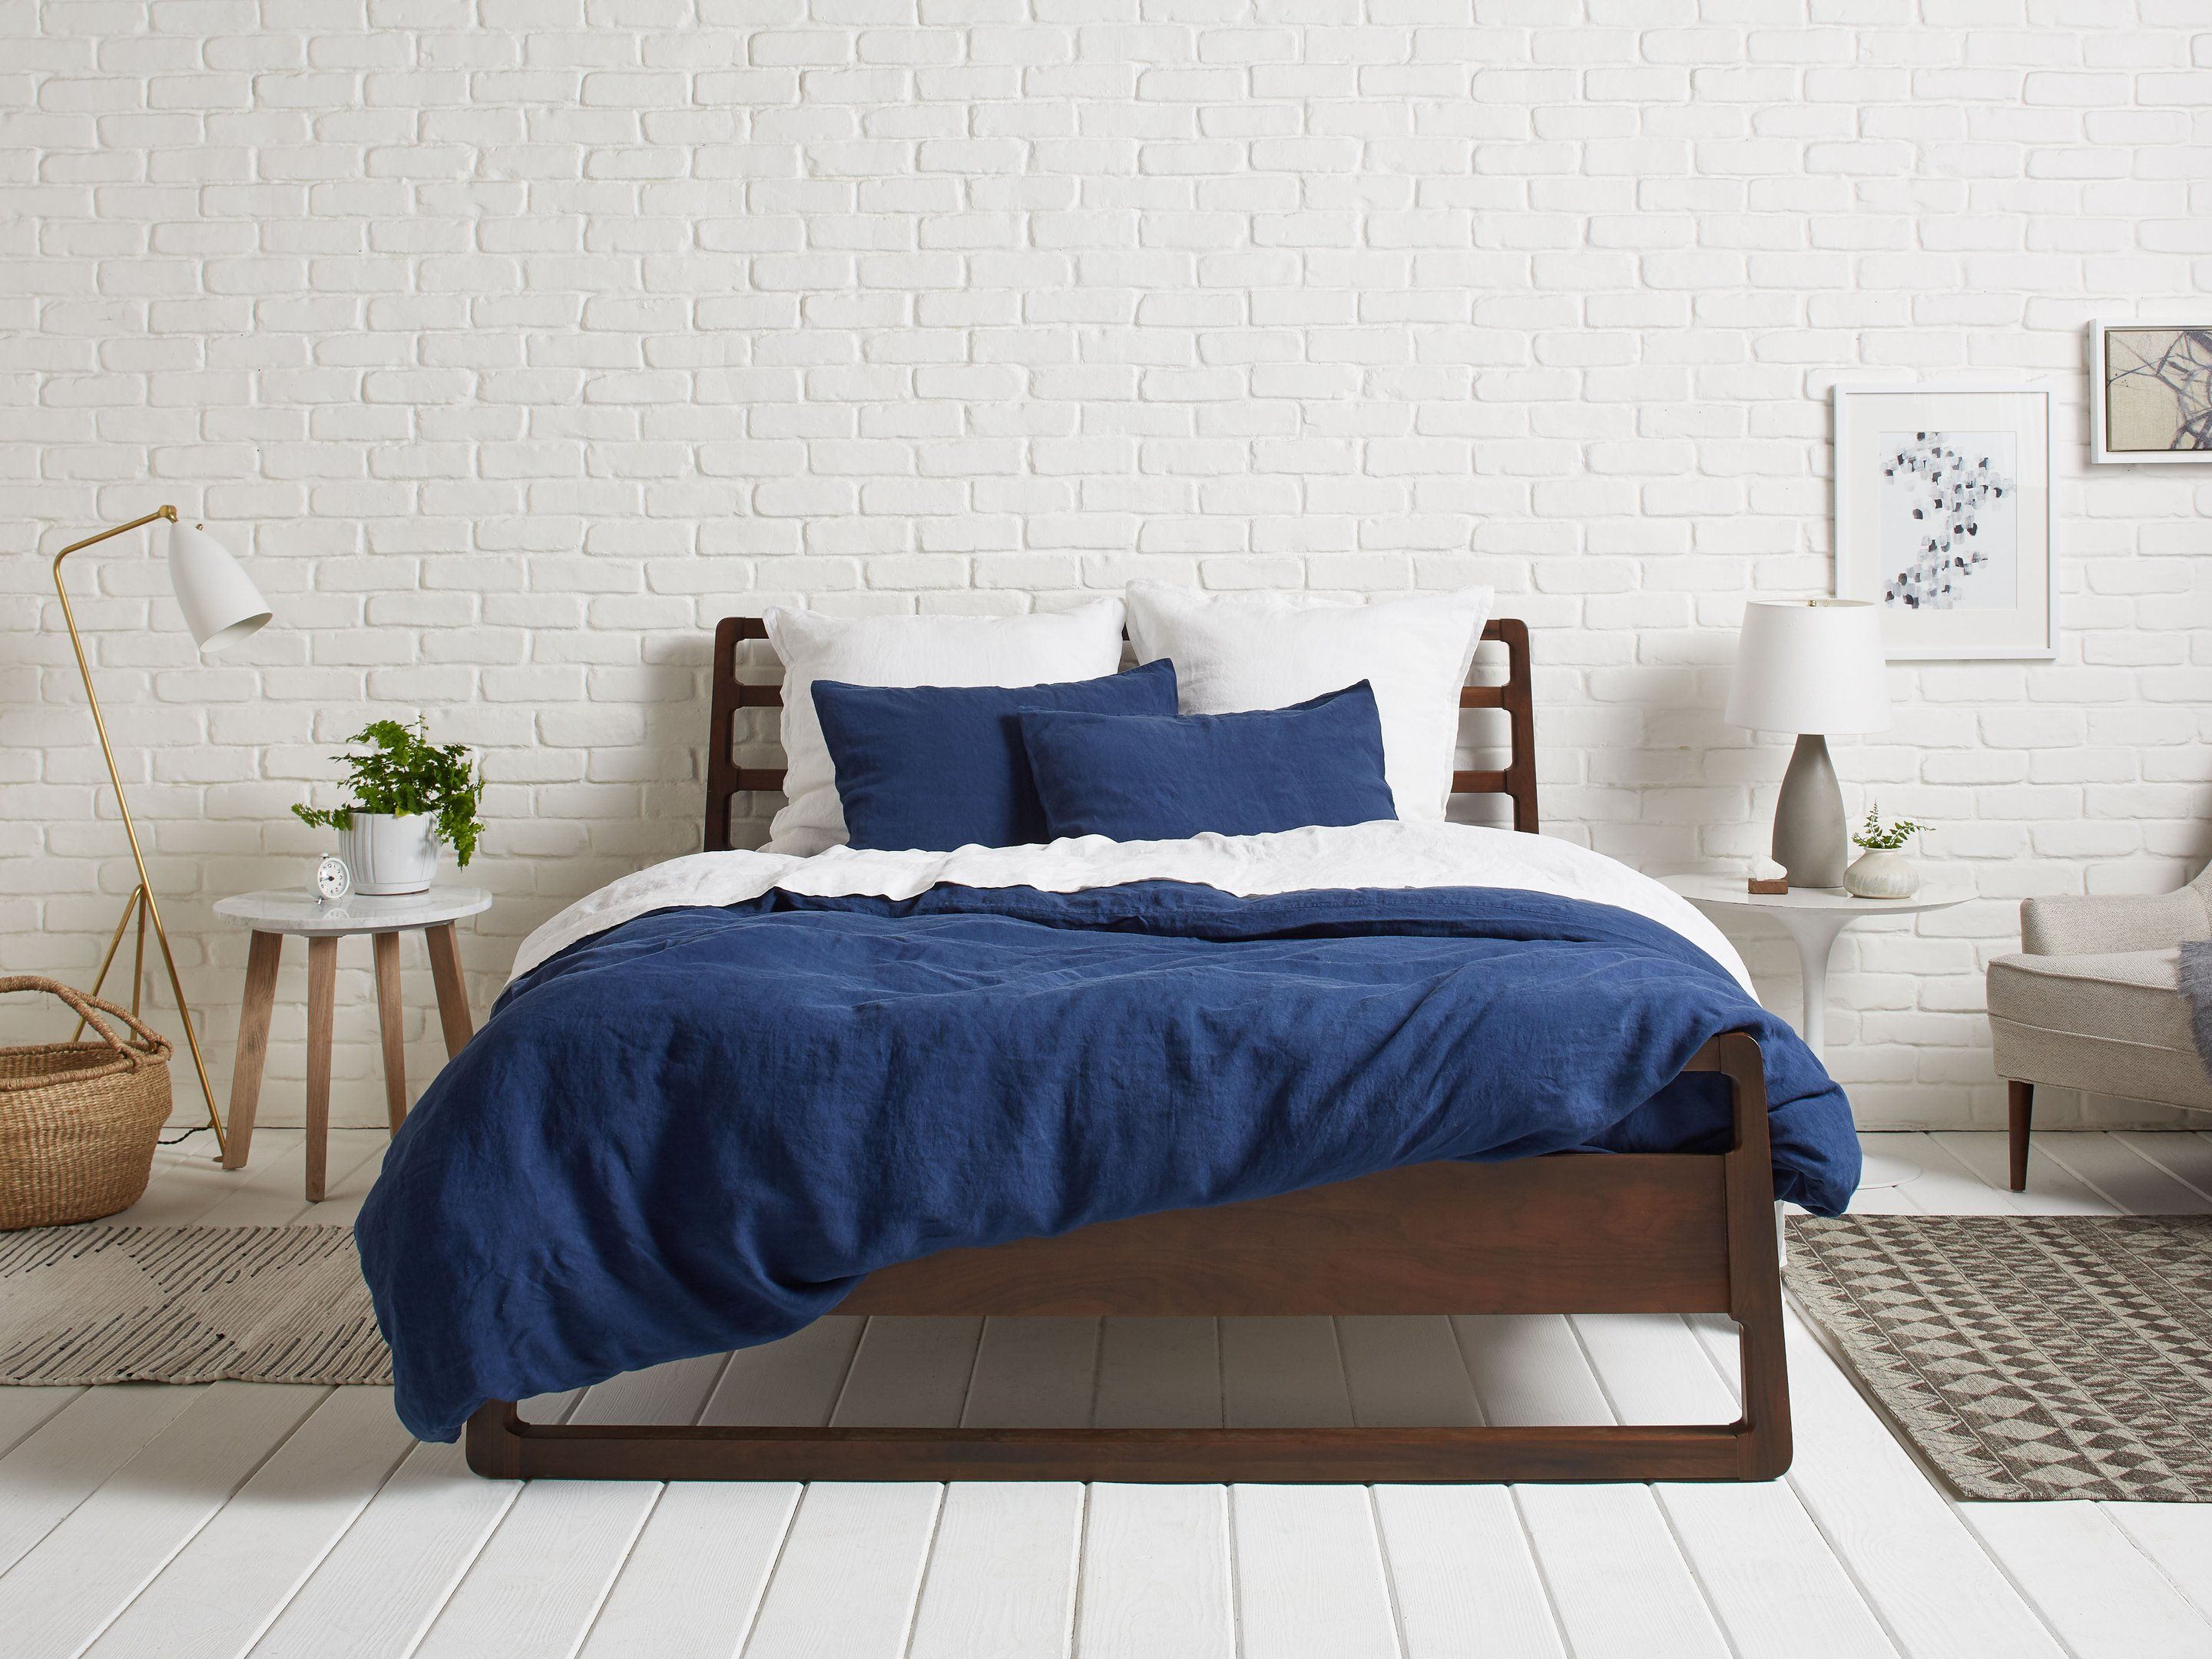 Linen Duvet Cover, for guest bed...or our bed Linen